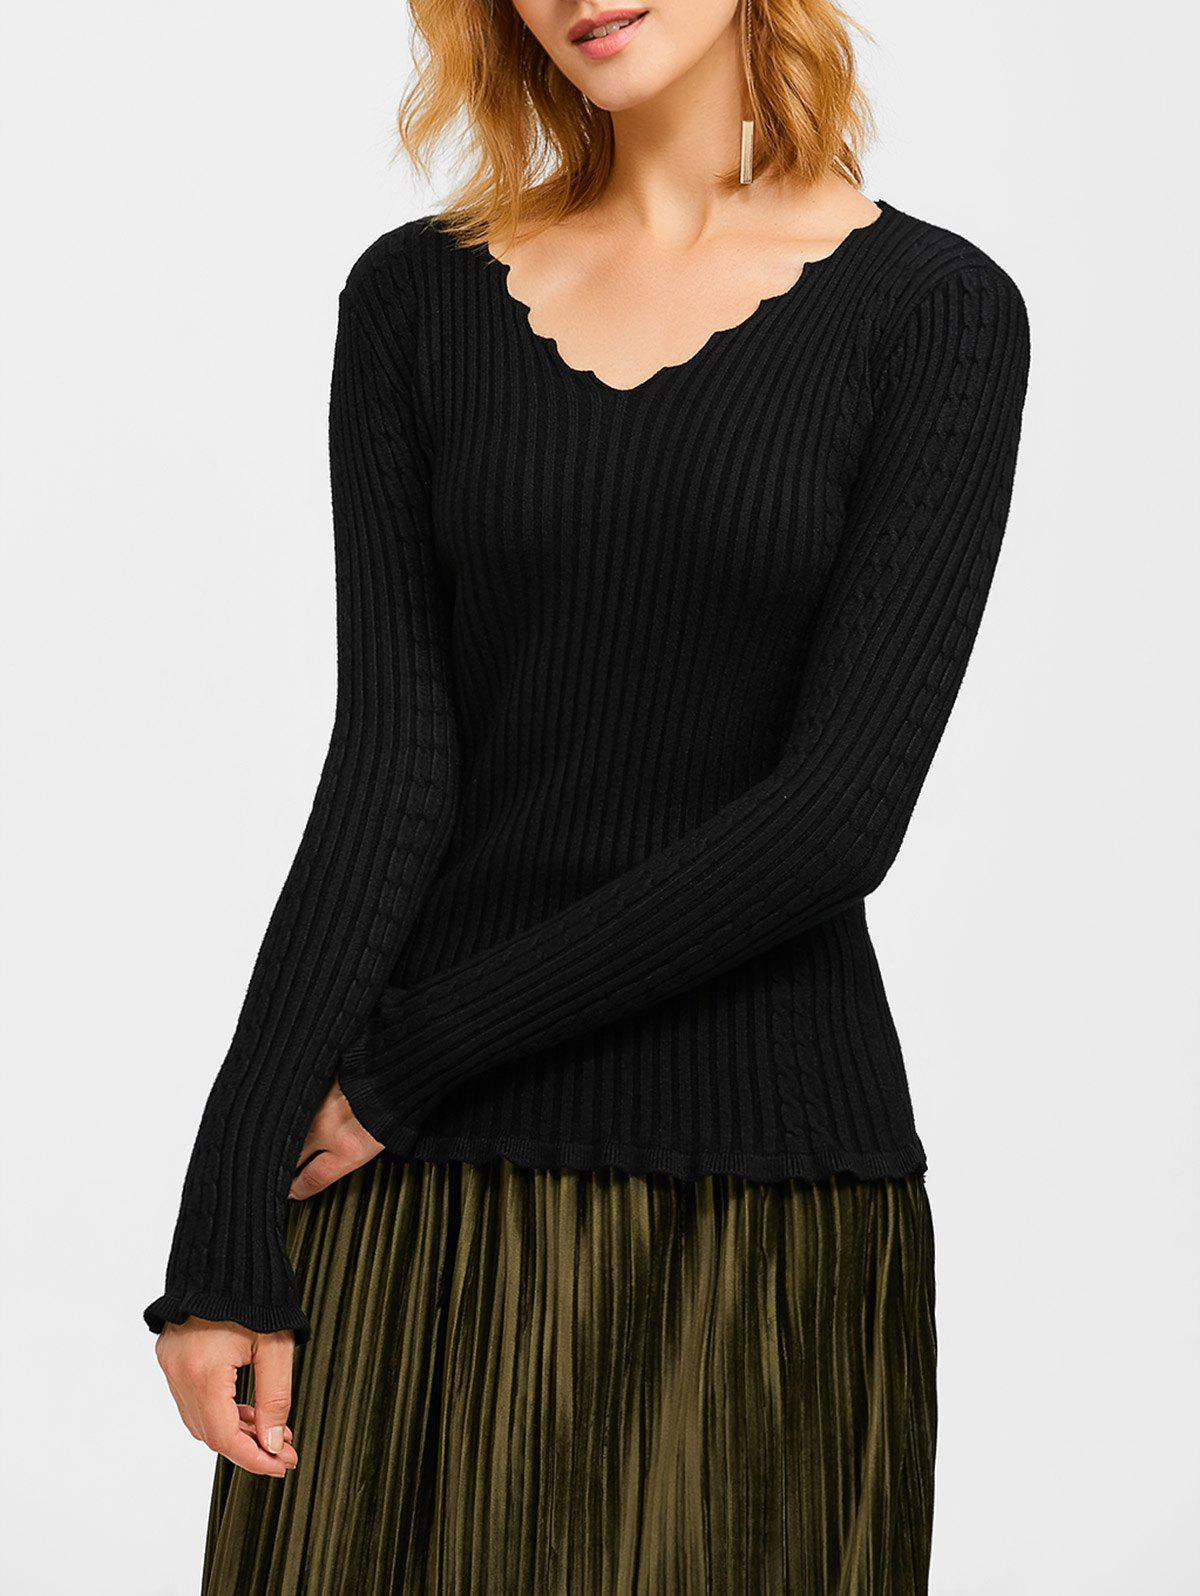 Flounce Ribbed V Neck SweaterWOMEN<br><br>Size: ONE SIZE; Color: BLACK; Type: Pullovers; Material: Polyester; Sleeve Length: Full; Collar: V-Neck; Style: Fashion; Pattern Type: Solid; Season: Fall,Spring,Winter; Weight: 0.370kg; Package Contents: 1 x Sweater;